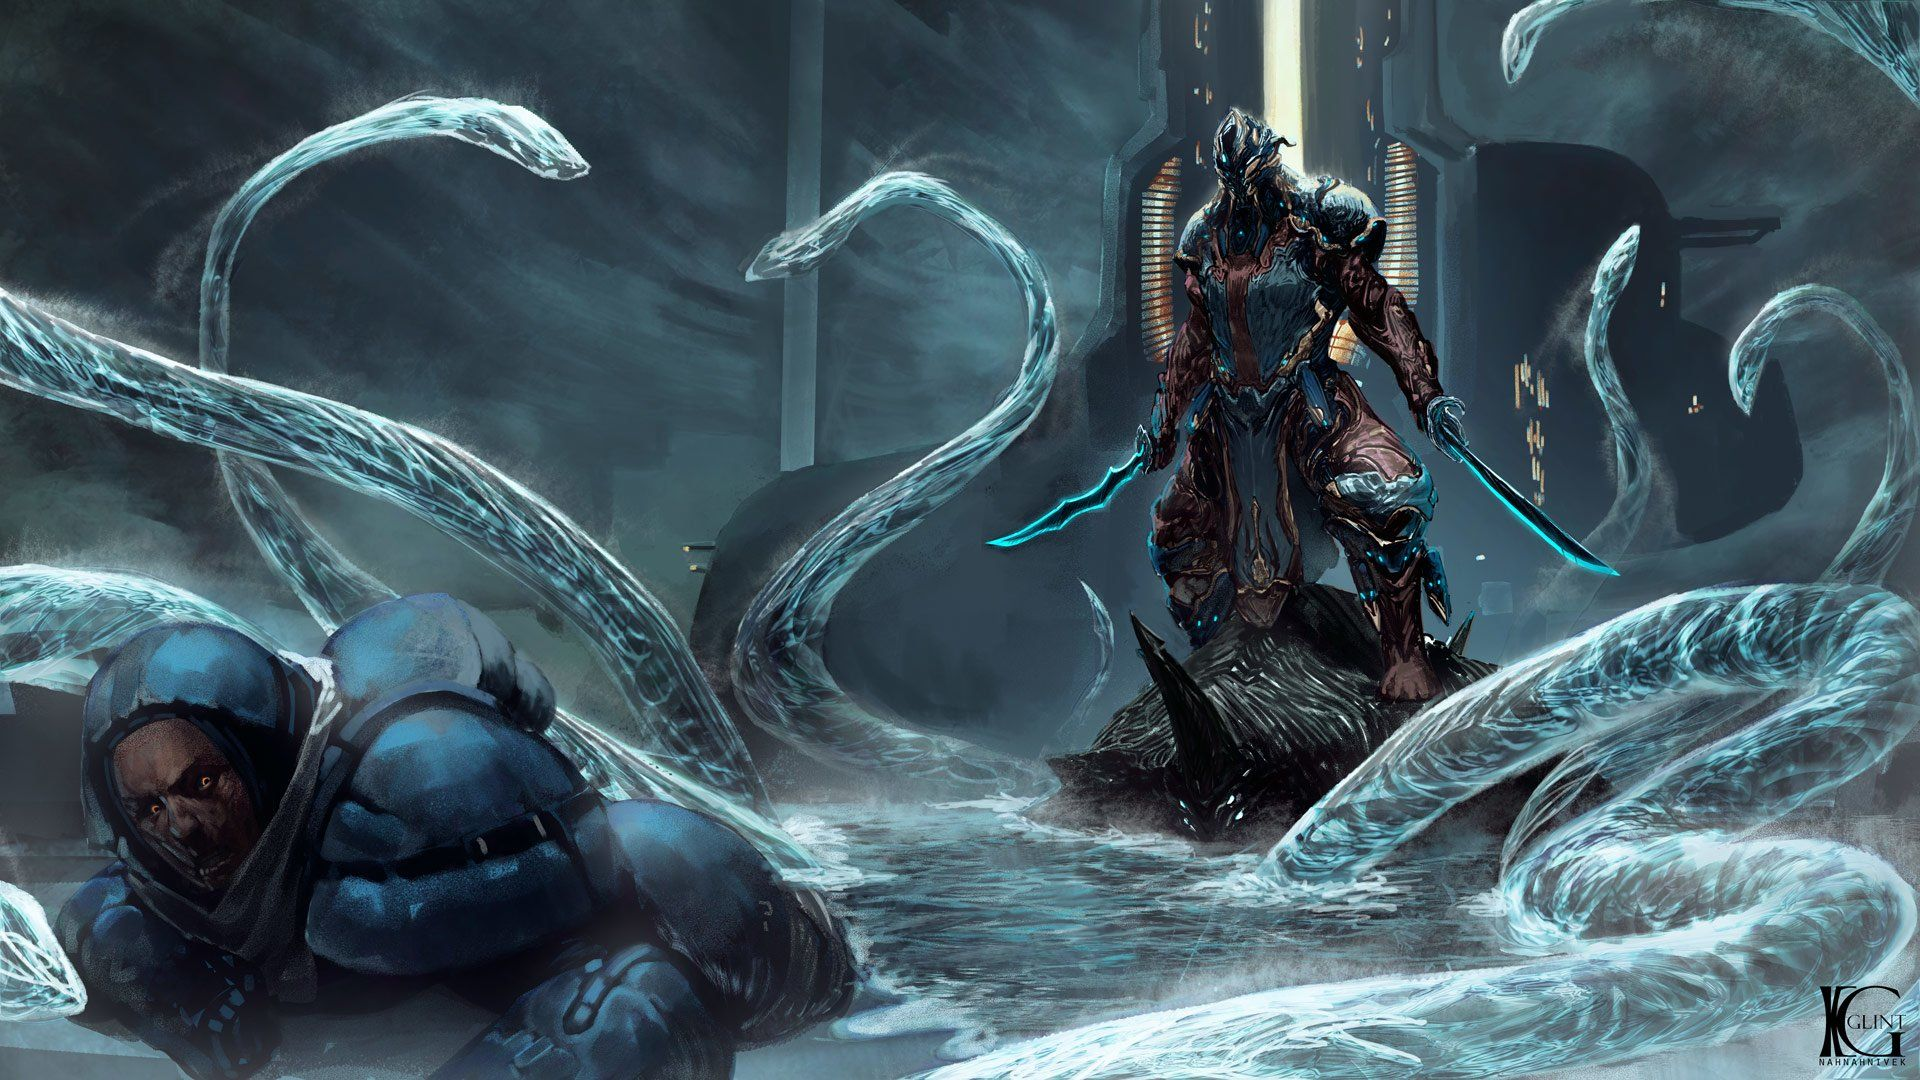 Video Game Warframe Warrior Sword Wallpaper | Warframe in